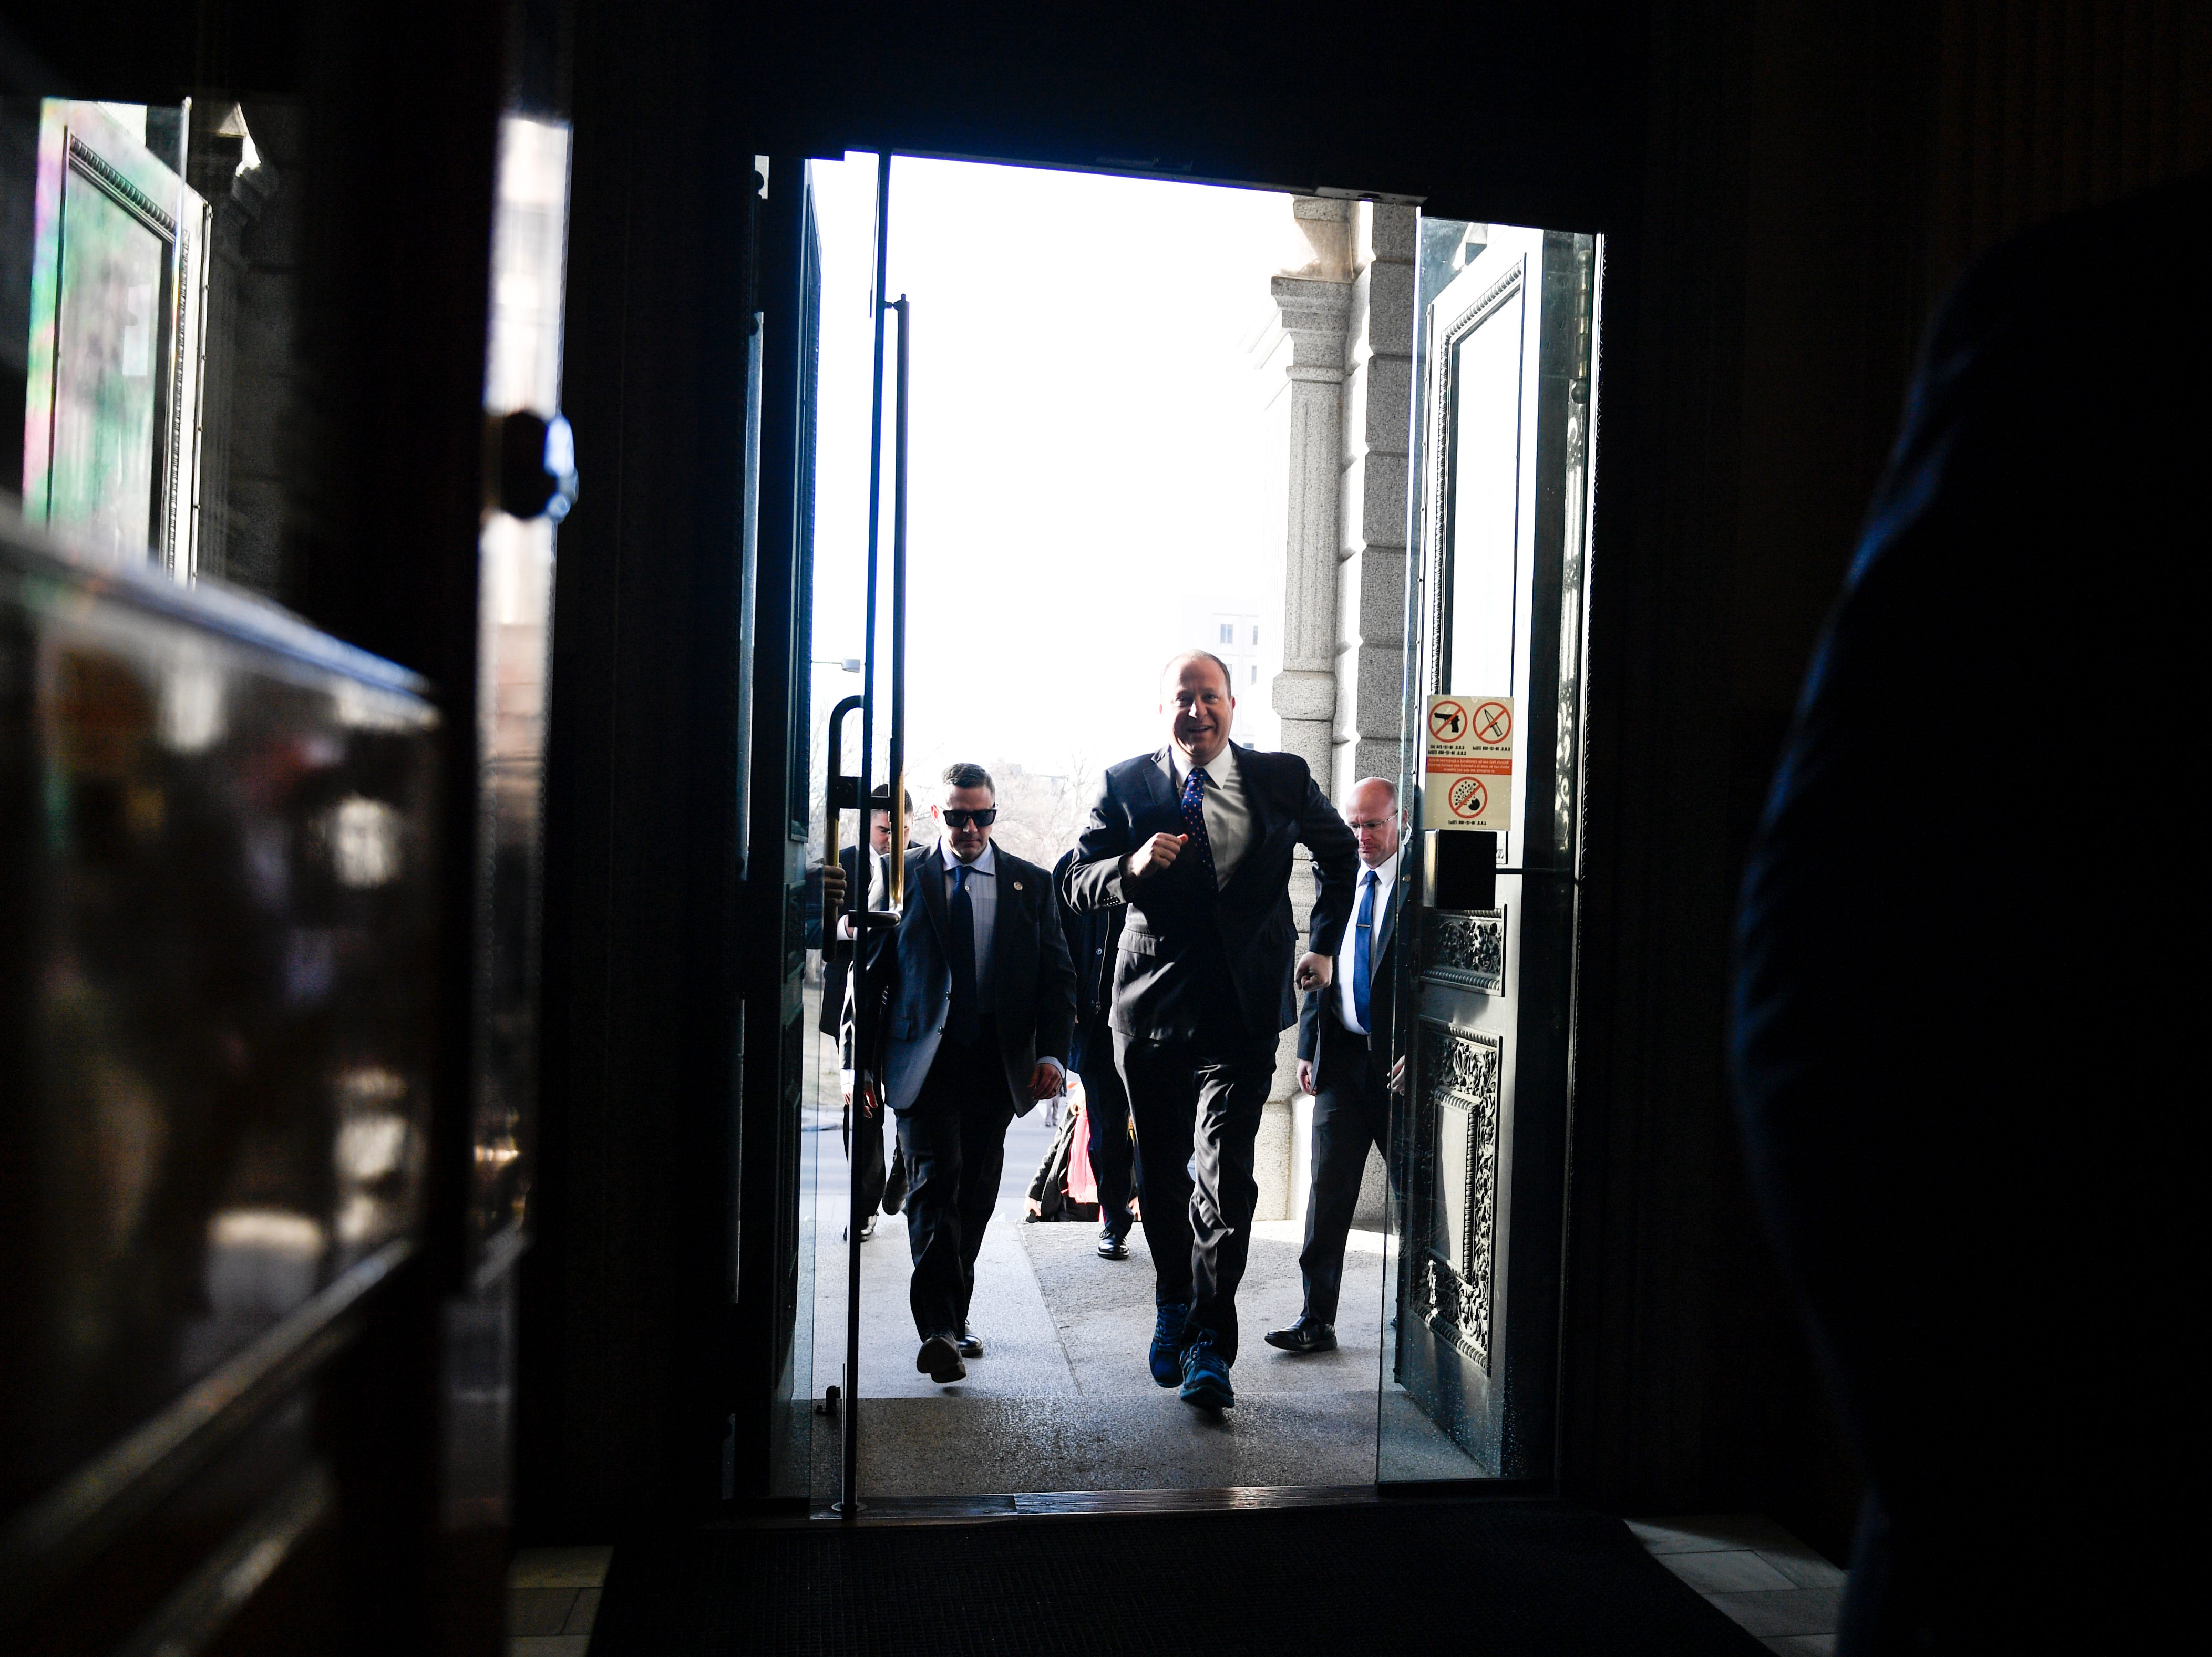 DENVER, CO - JANUARY 8: Colorado Governor elect Jared Polis jogs through the doorway as he arrives on scene before his inauguration at the Colorado State Capitol on Tuesday, January 8, 2019. (Photo by AAron Ontiveroz/The Denver Post/Pool)